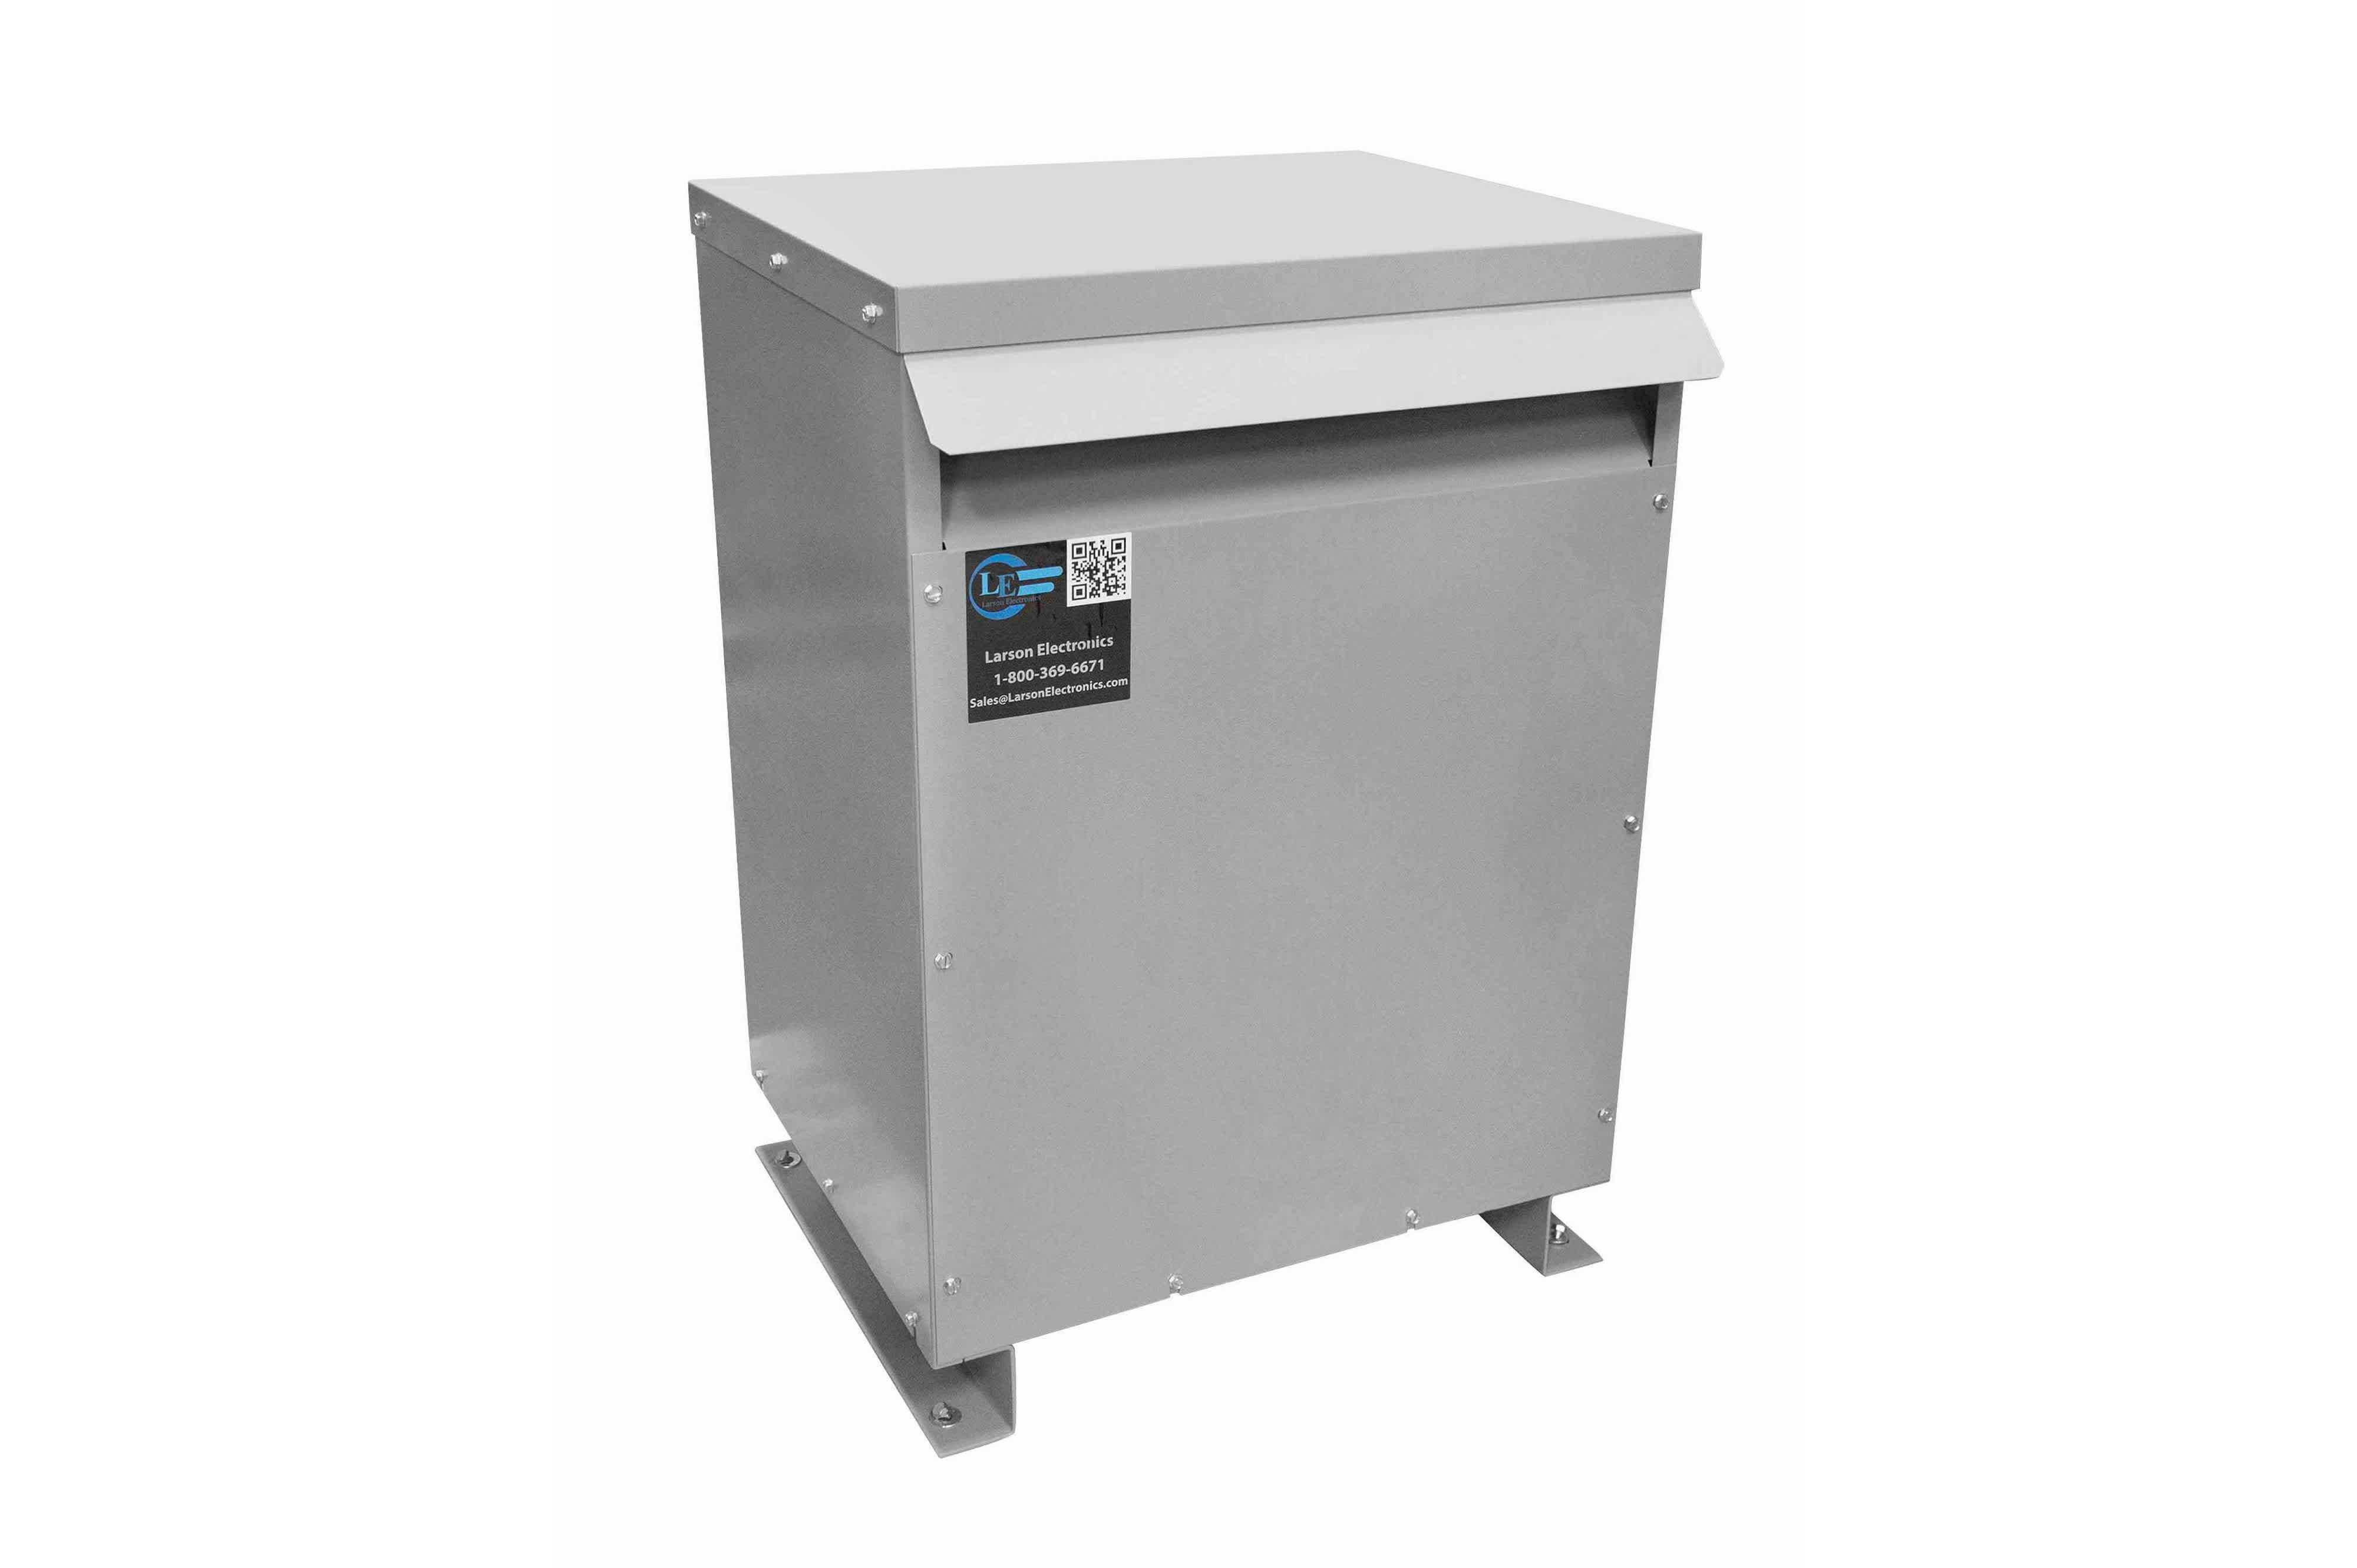 90 kVA 3PH Isolation Transformer, 460V Wye Primary, 380V Delta Secondary, N3R, Ventilated, 60 Hz